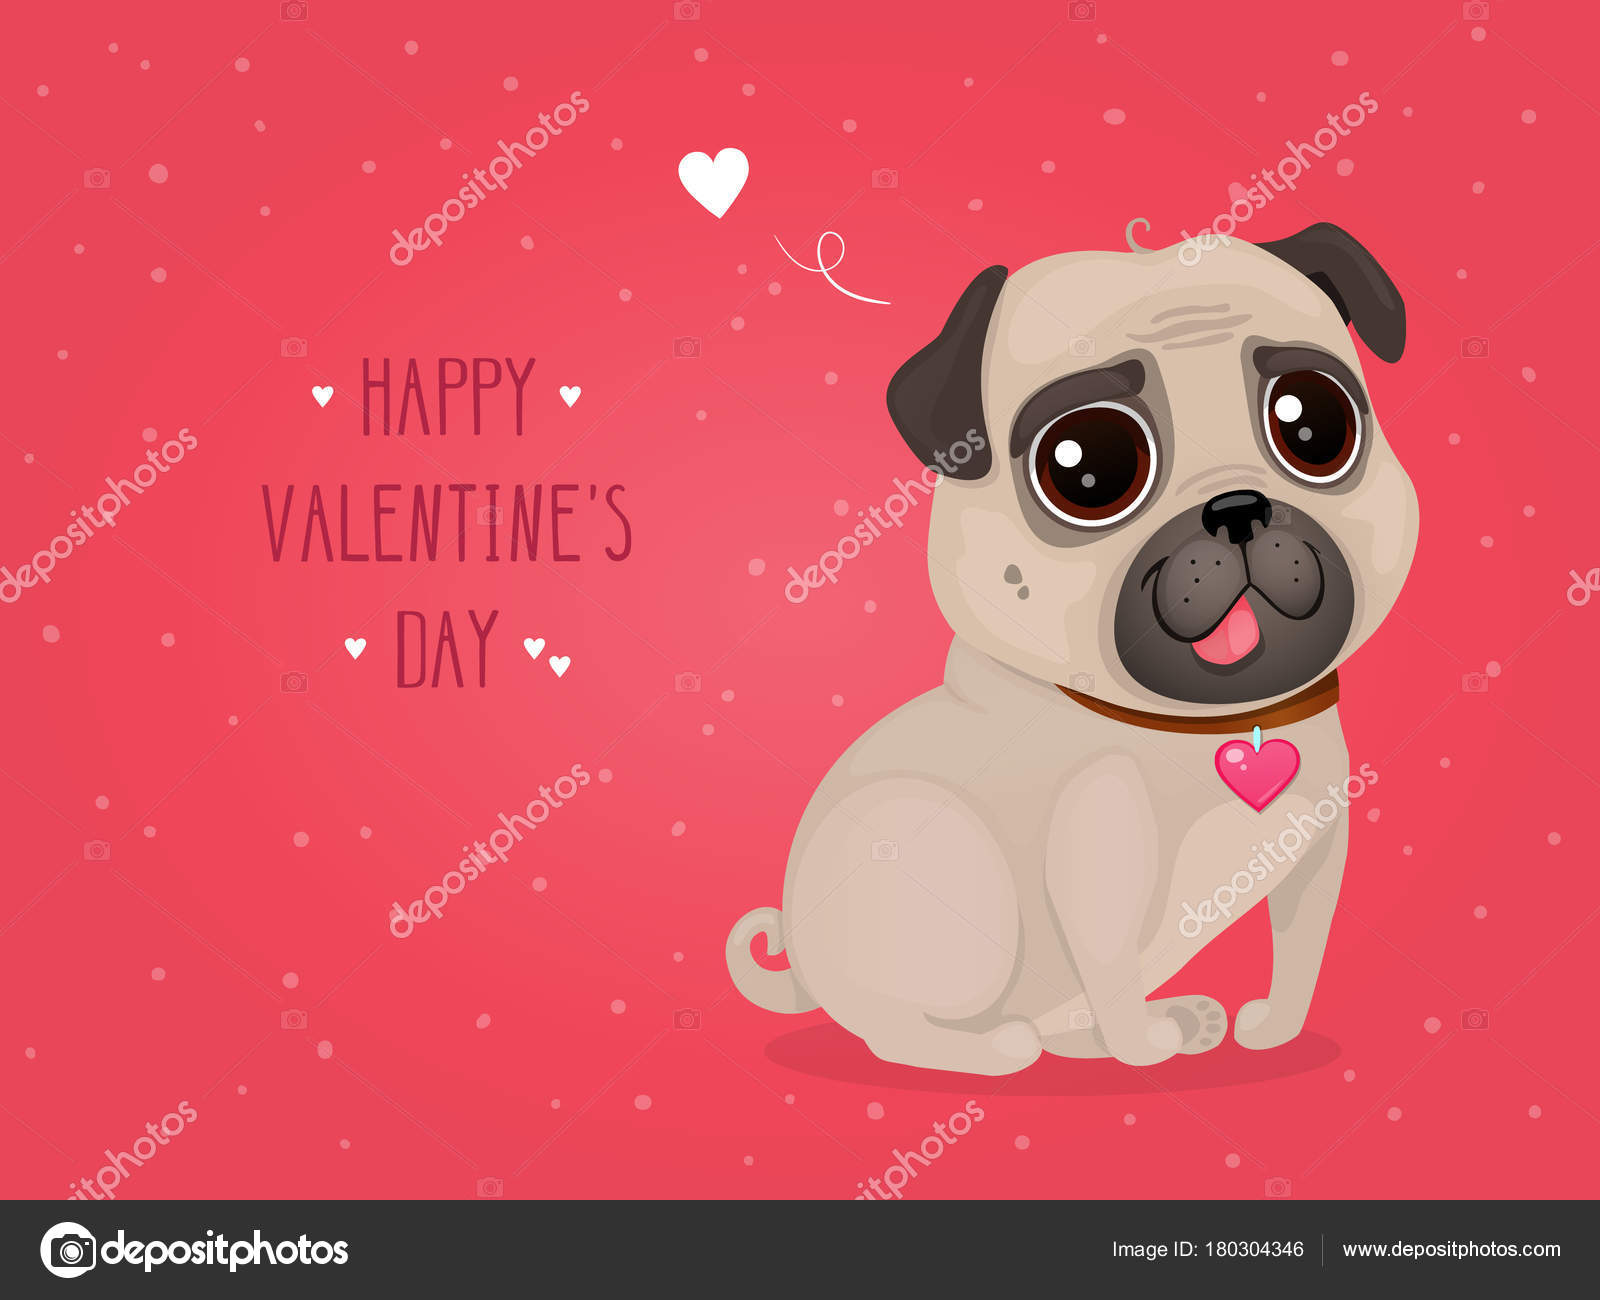 Greeting Card Valentine Day Cute Pug Cartoon Dog Heart Vector